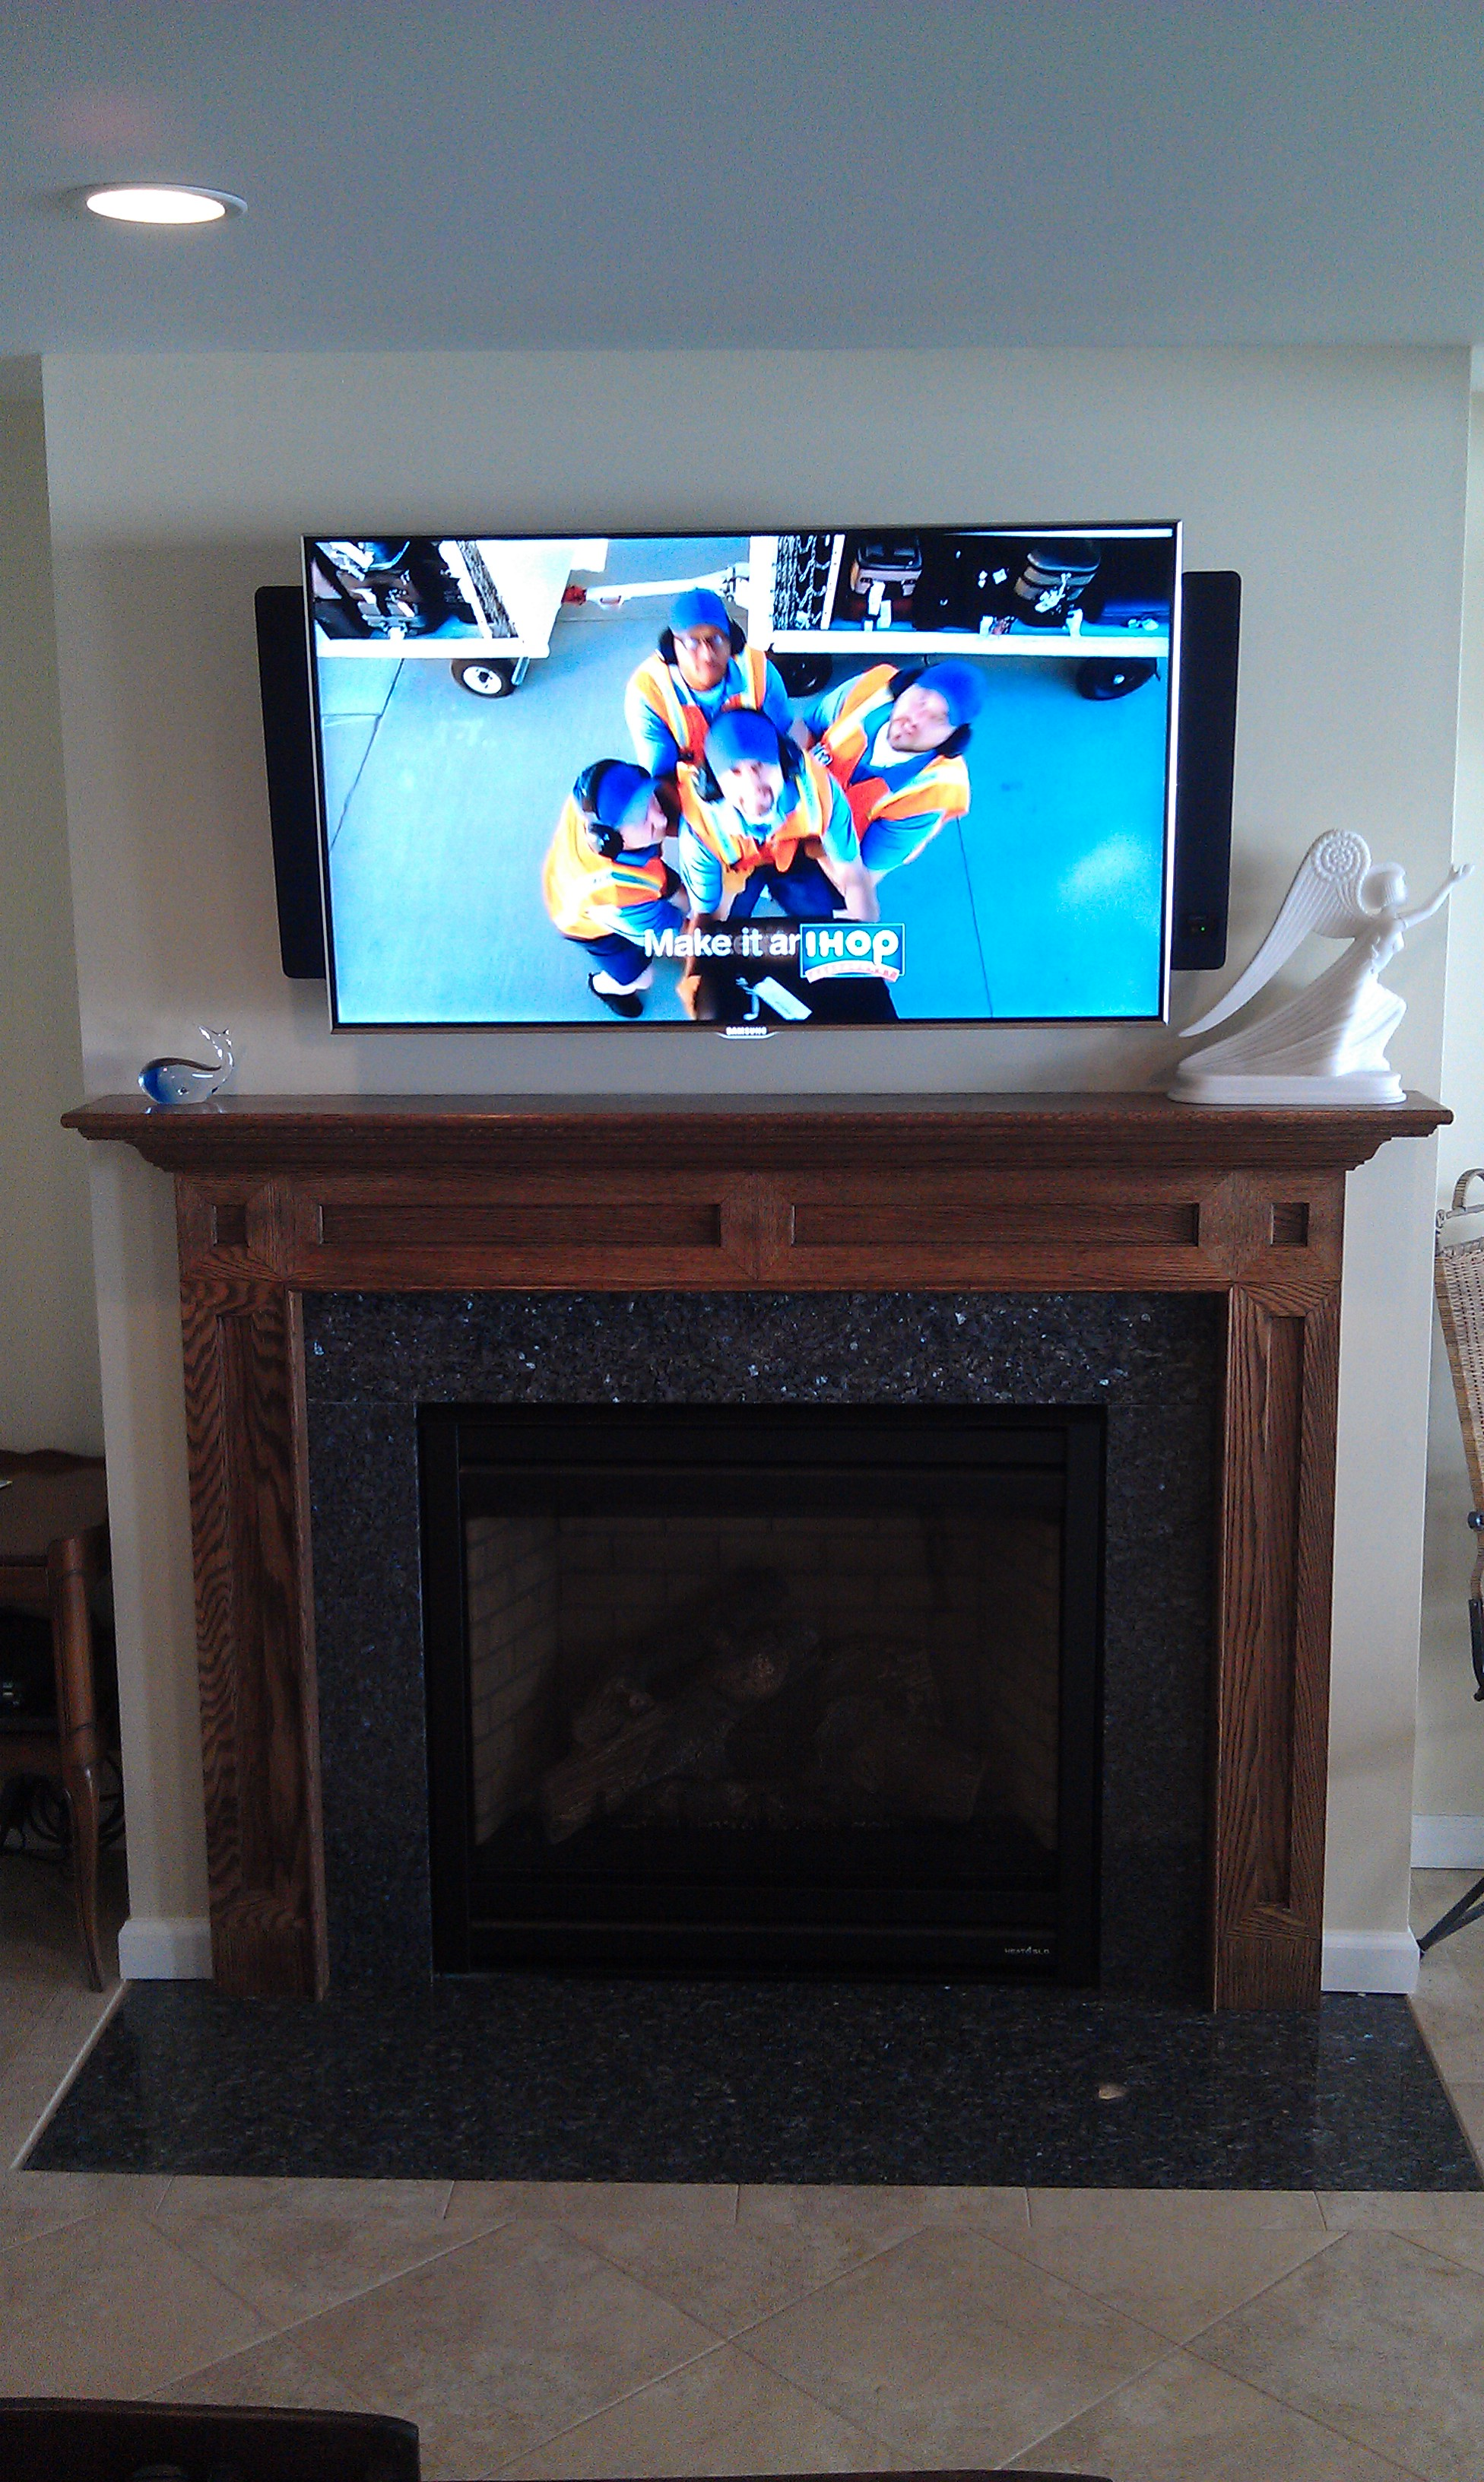 durham ct mount tv above fireplace richey group llc audio video experts. Black Bedroom Furniture Sets. Home Design Ideas